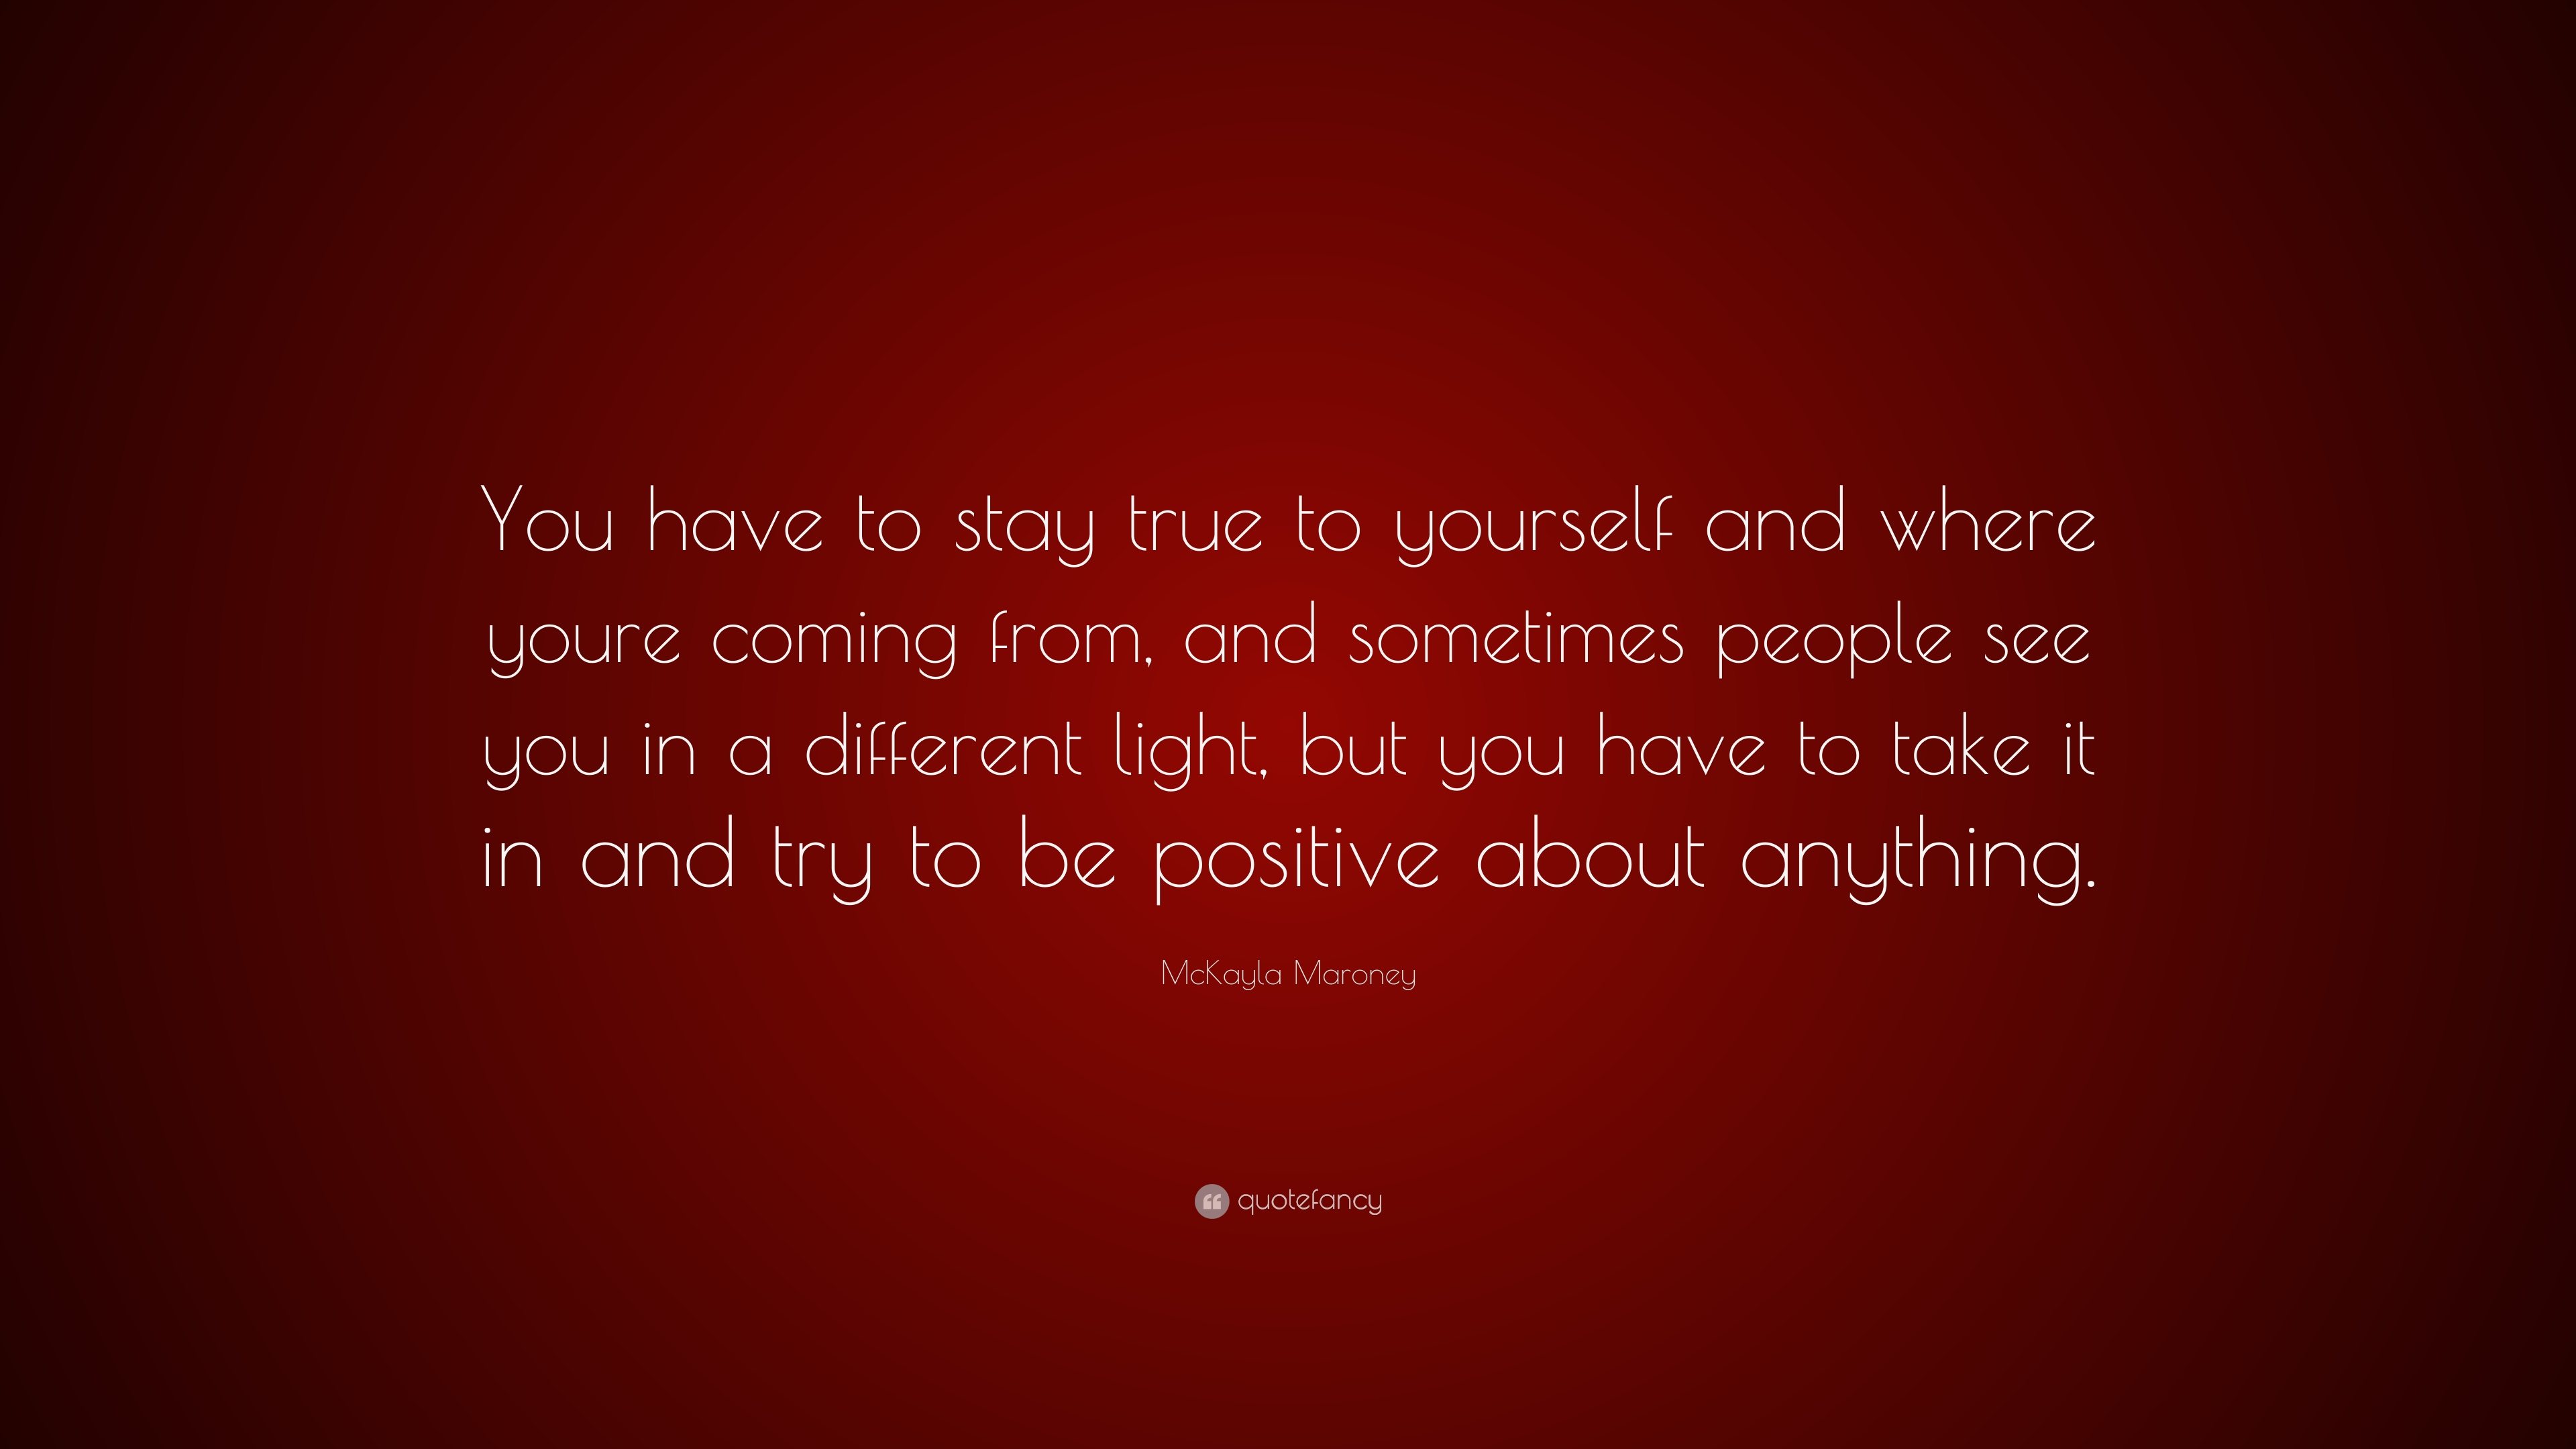 Mckayla Maroney Quote You Have To Stay True To Yourself And Where